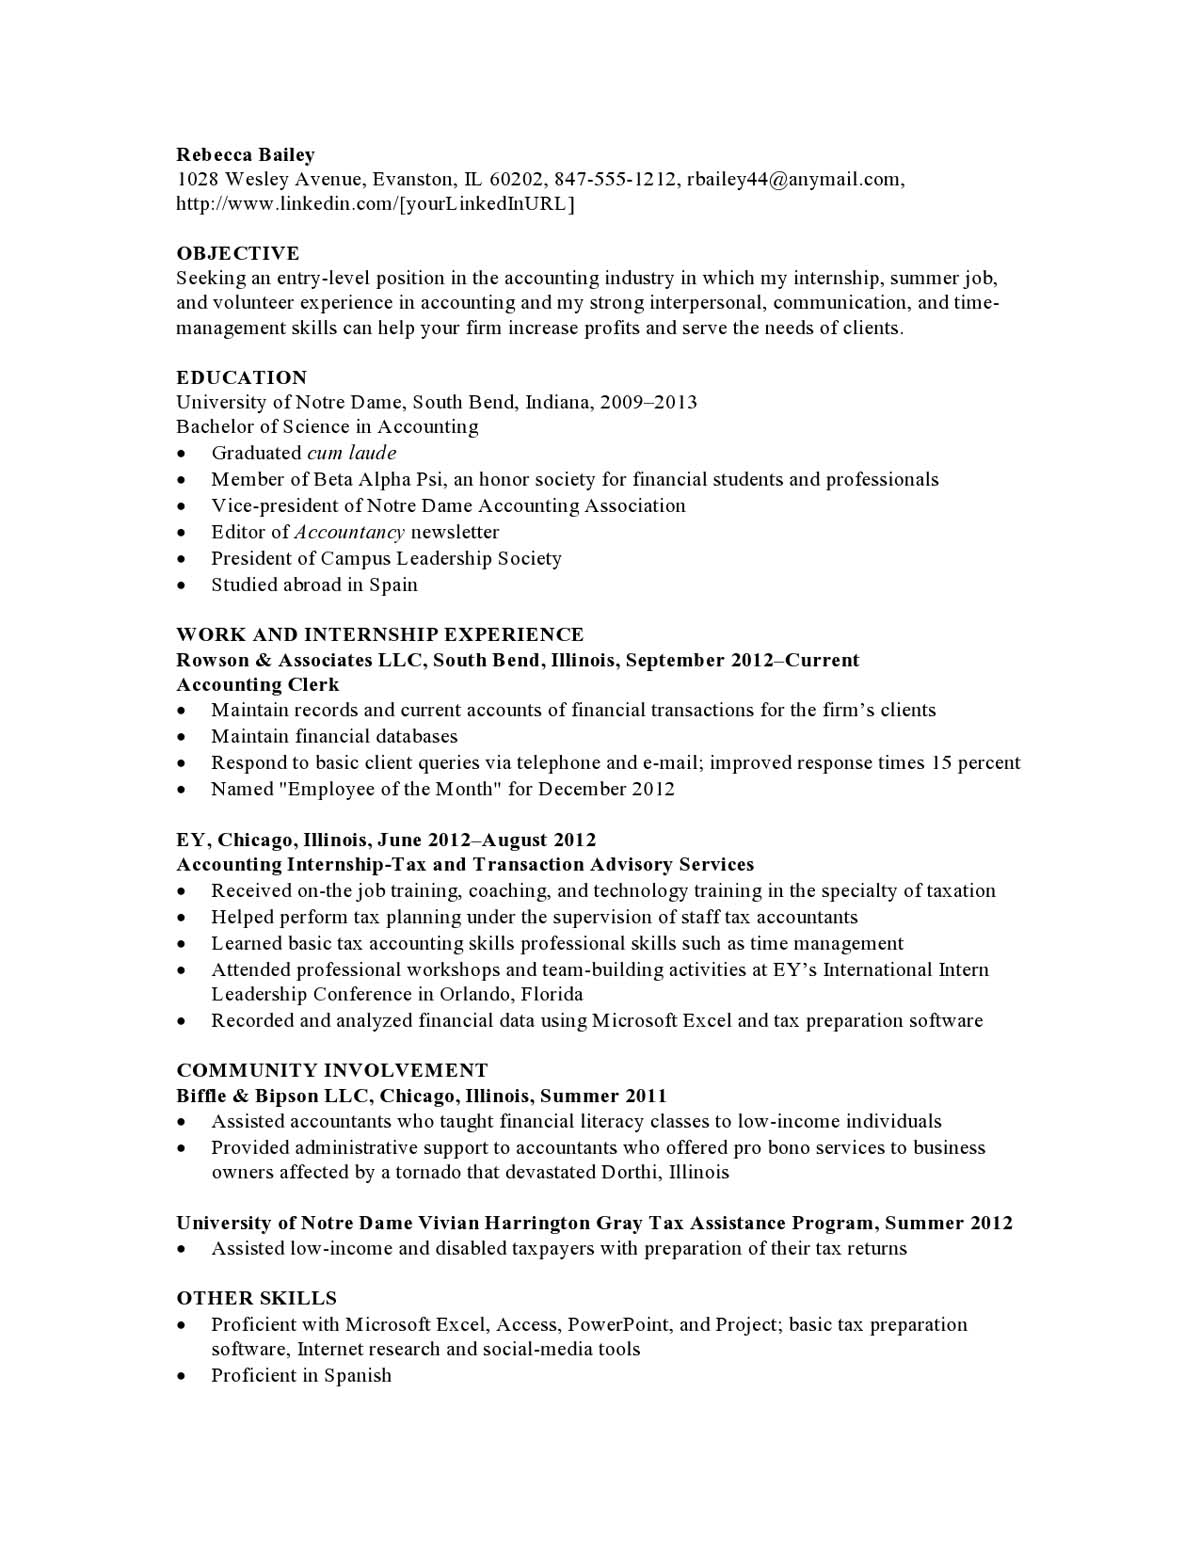 resume samples templates examples vault objective for medical field crescoact19 coach Resume Resume Objective For Medical Field